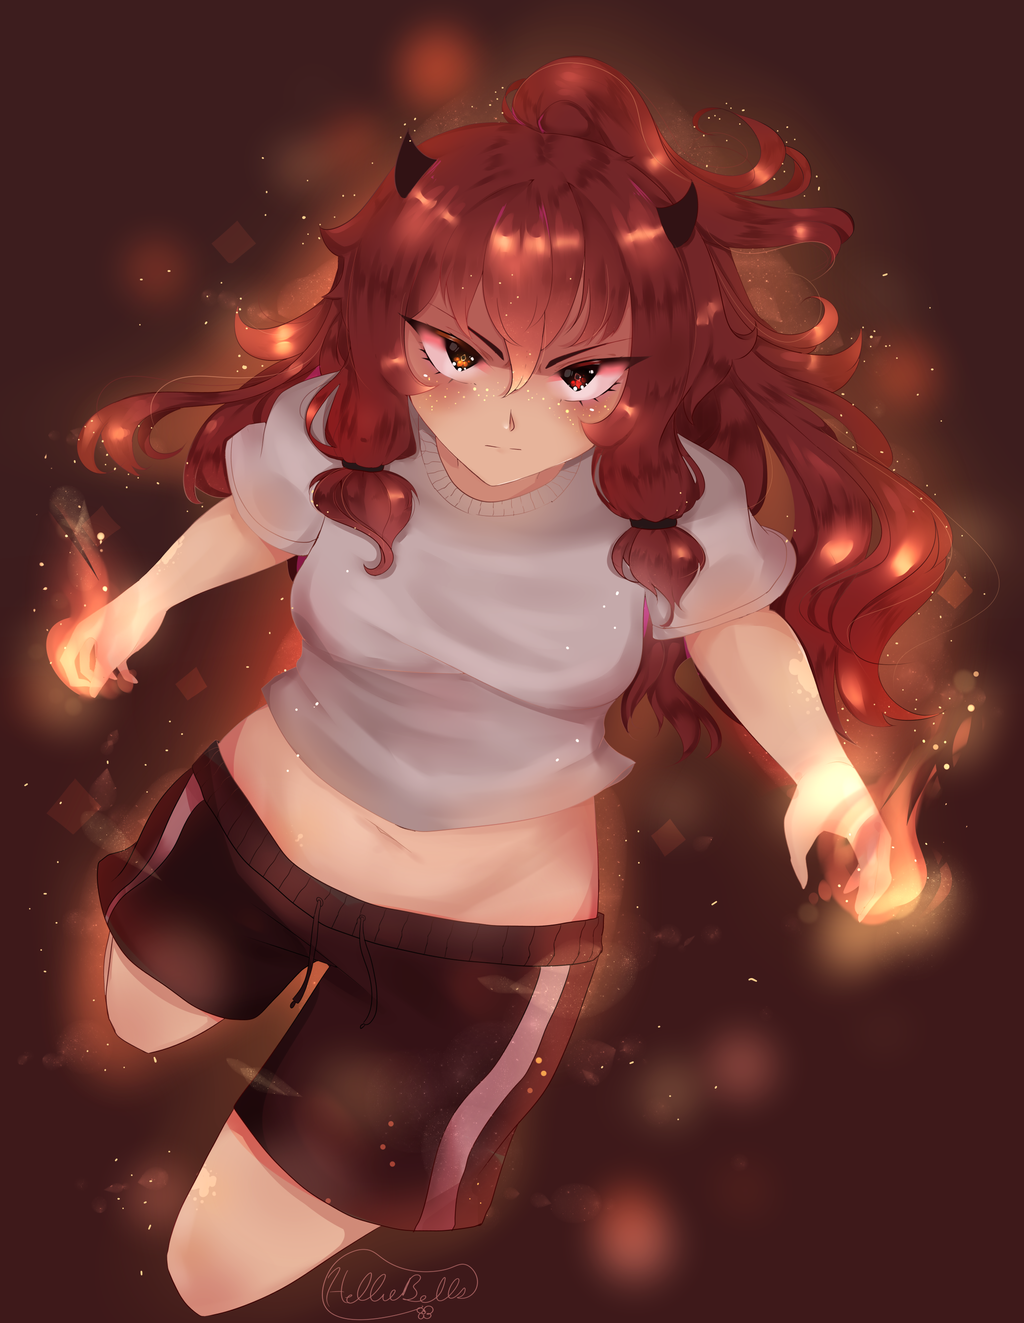 [OC] Inferno by Helliebells